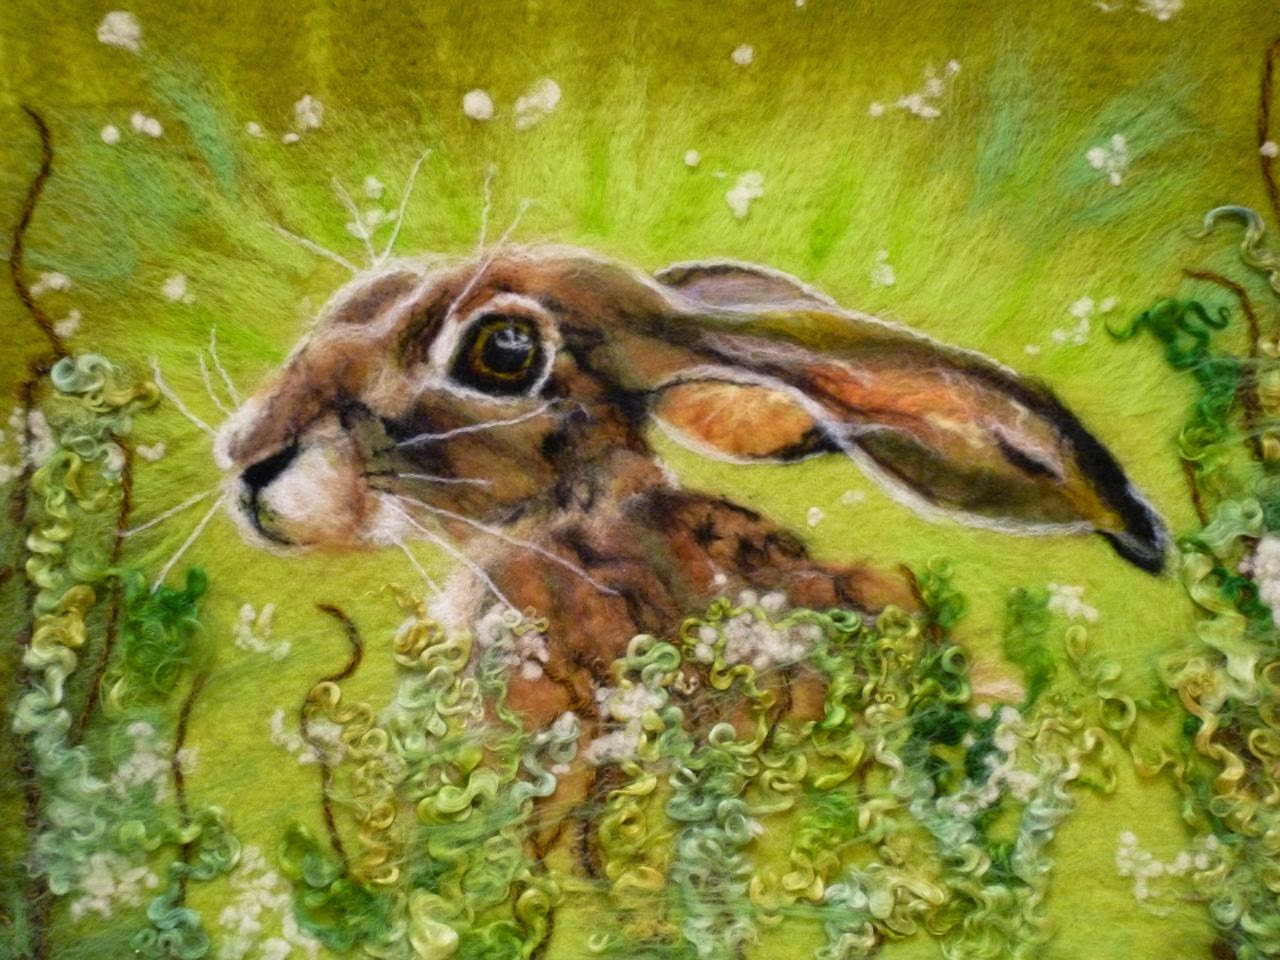 Wet felted hare 1